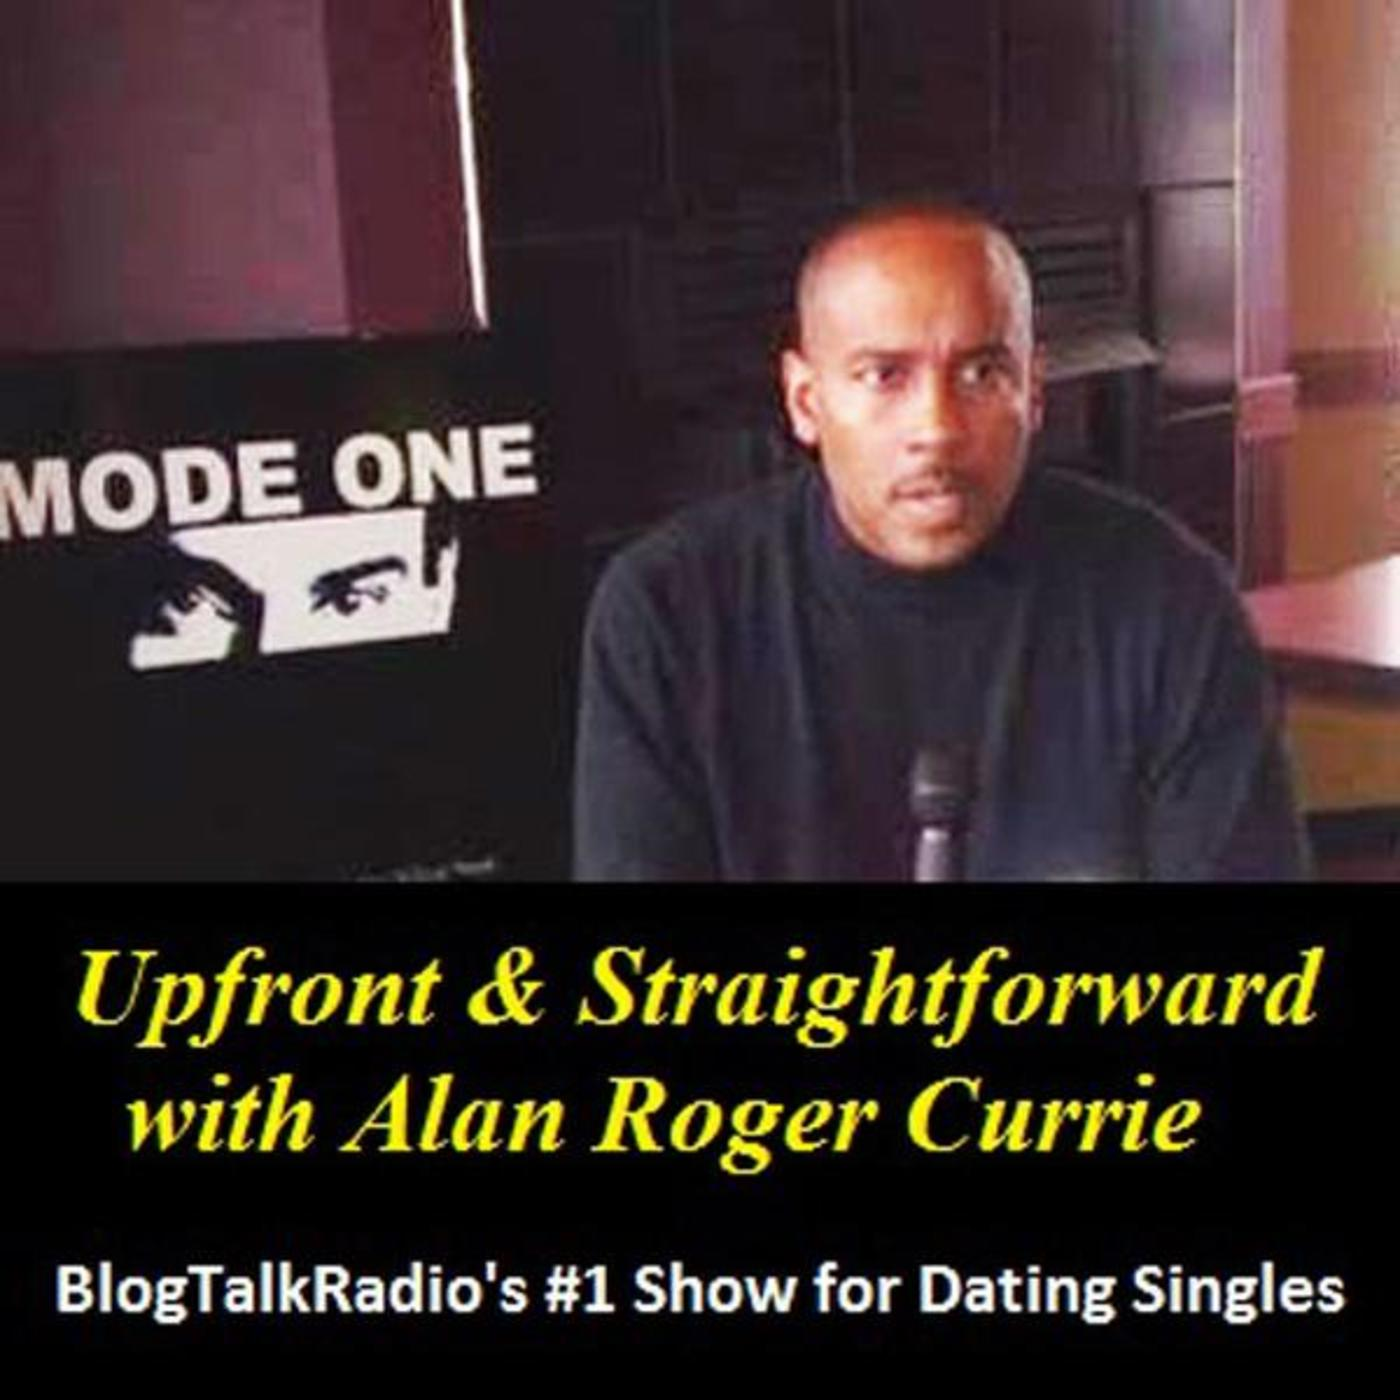 Upfront & Straightforward with Alan Roger Currie